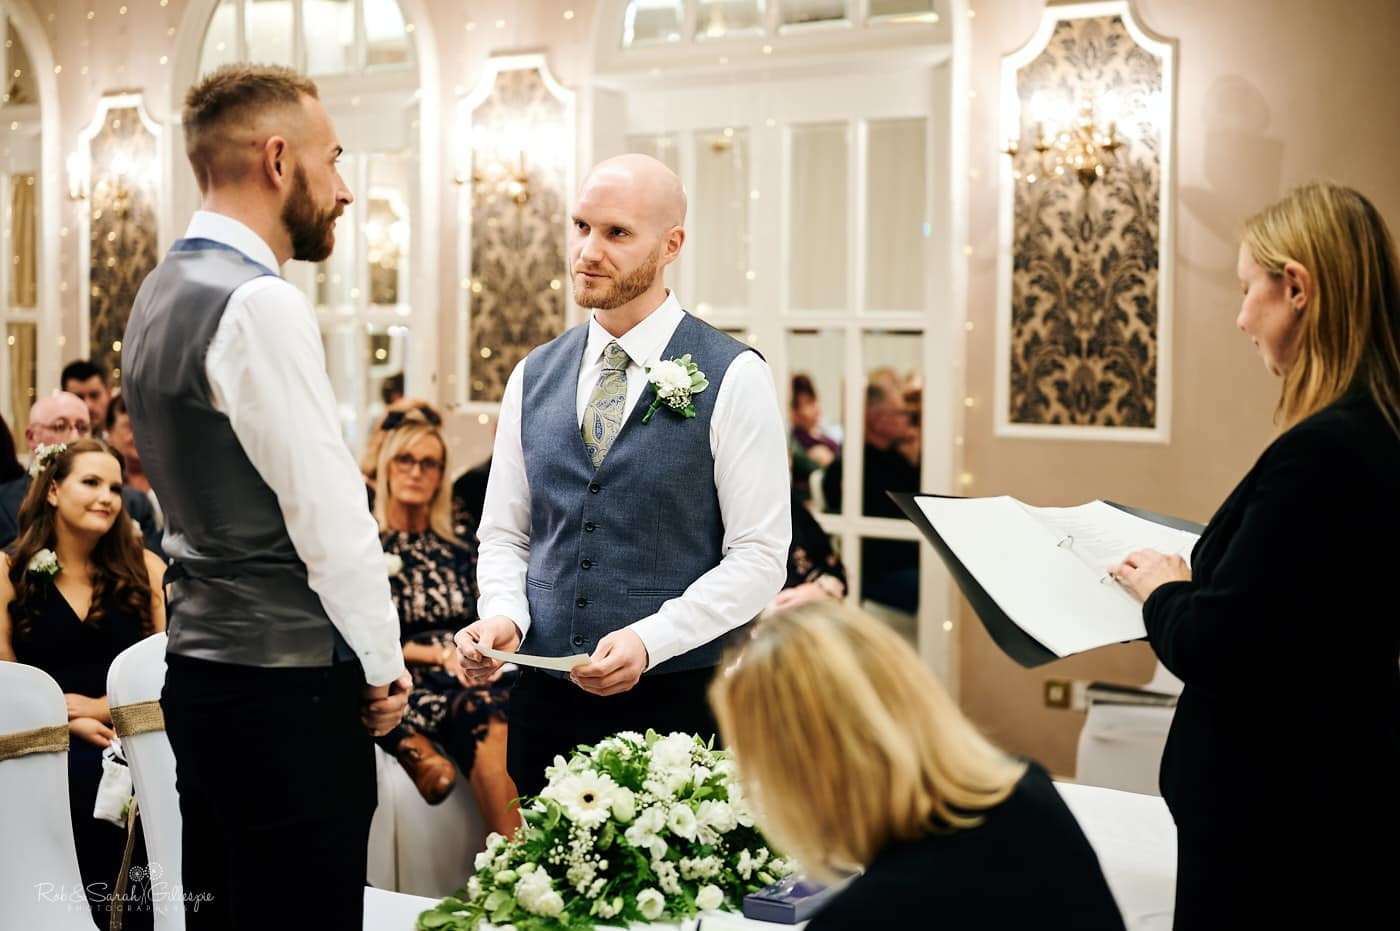 Two grooms exchange wedding vows at Moor Hall Hotel